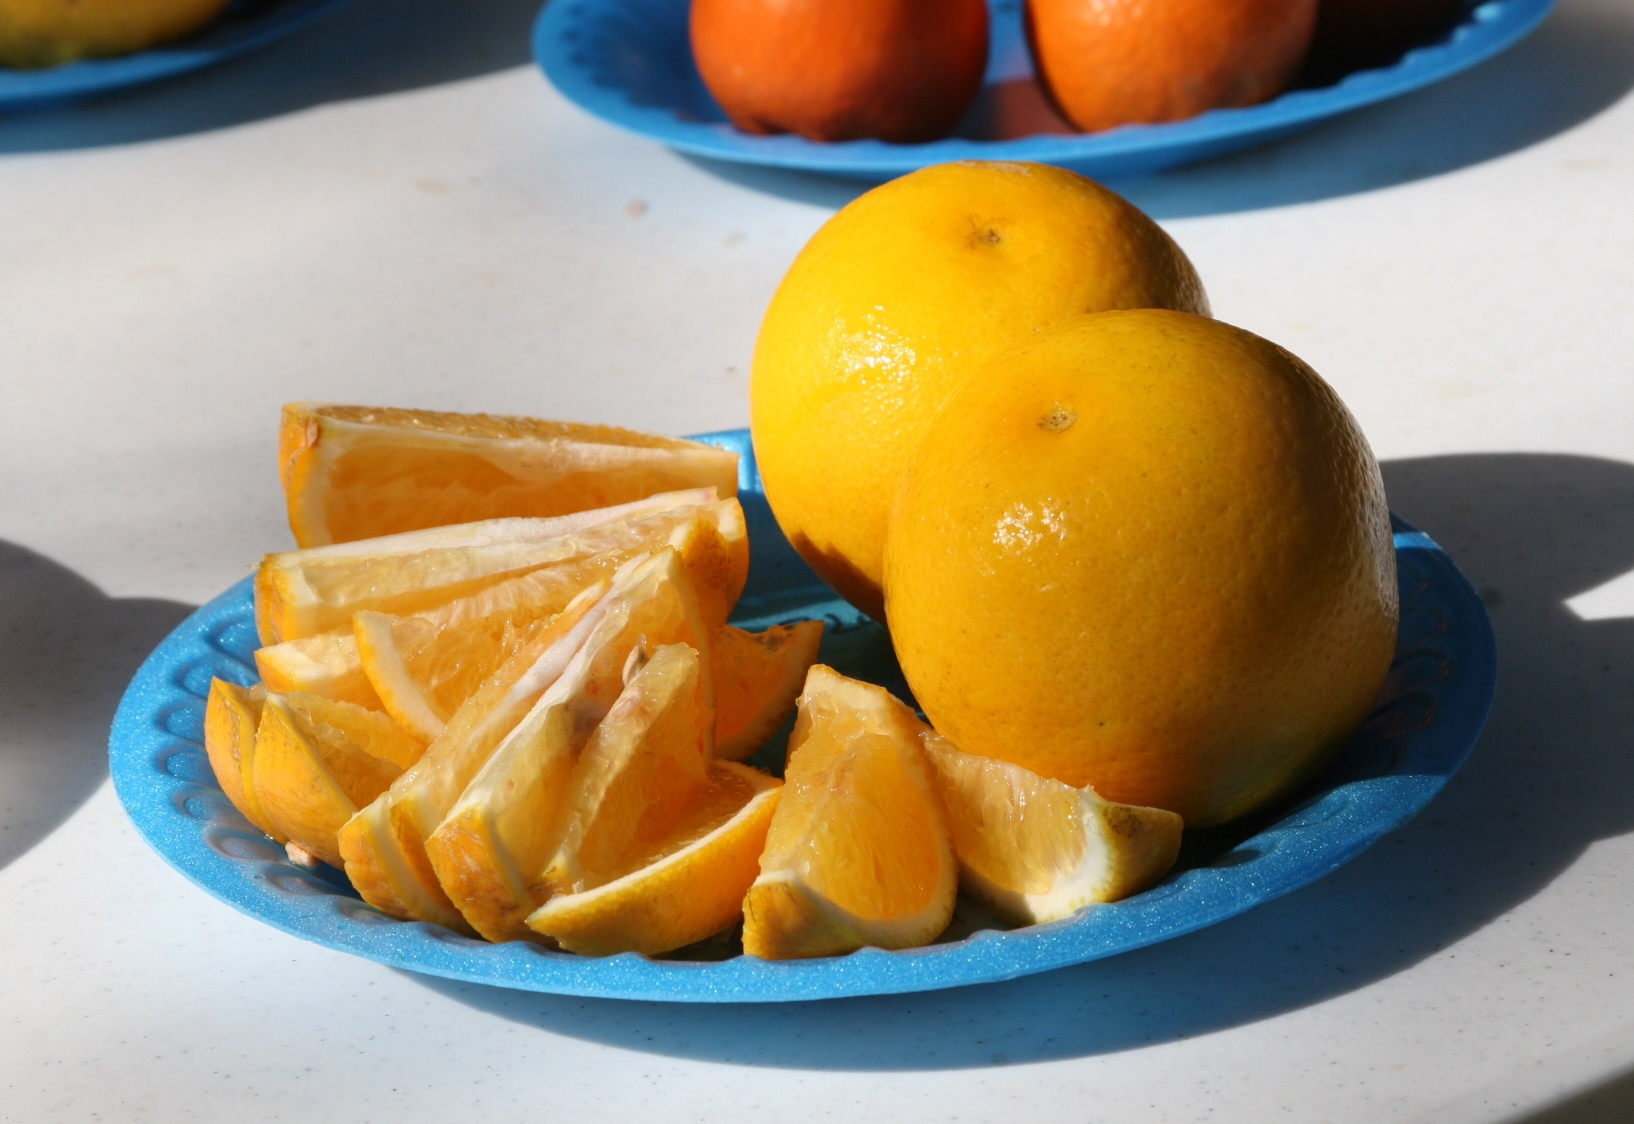 slicedoranges.JPG